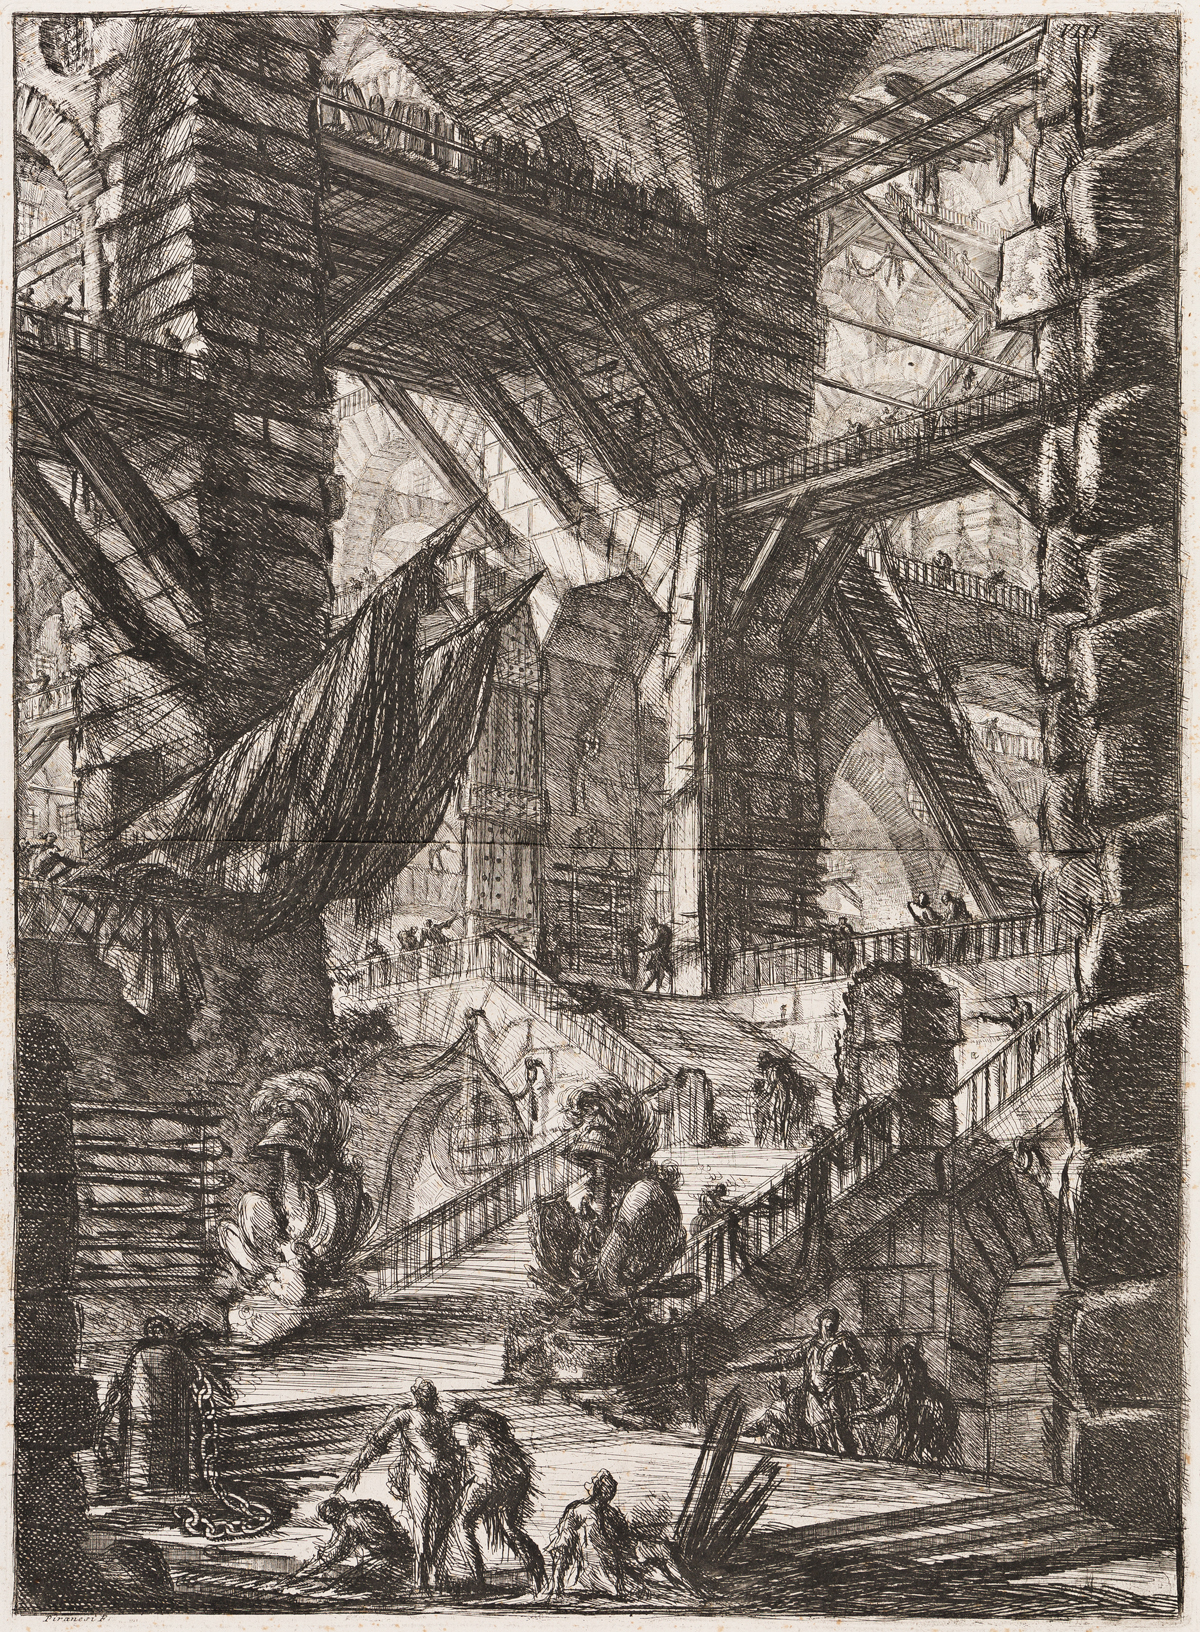 GIOVANNI B. PIRANESI The Staircase with Trophies.